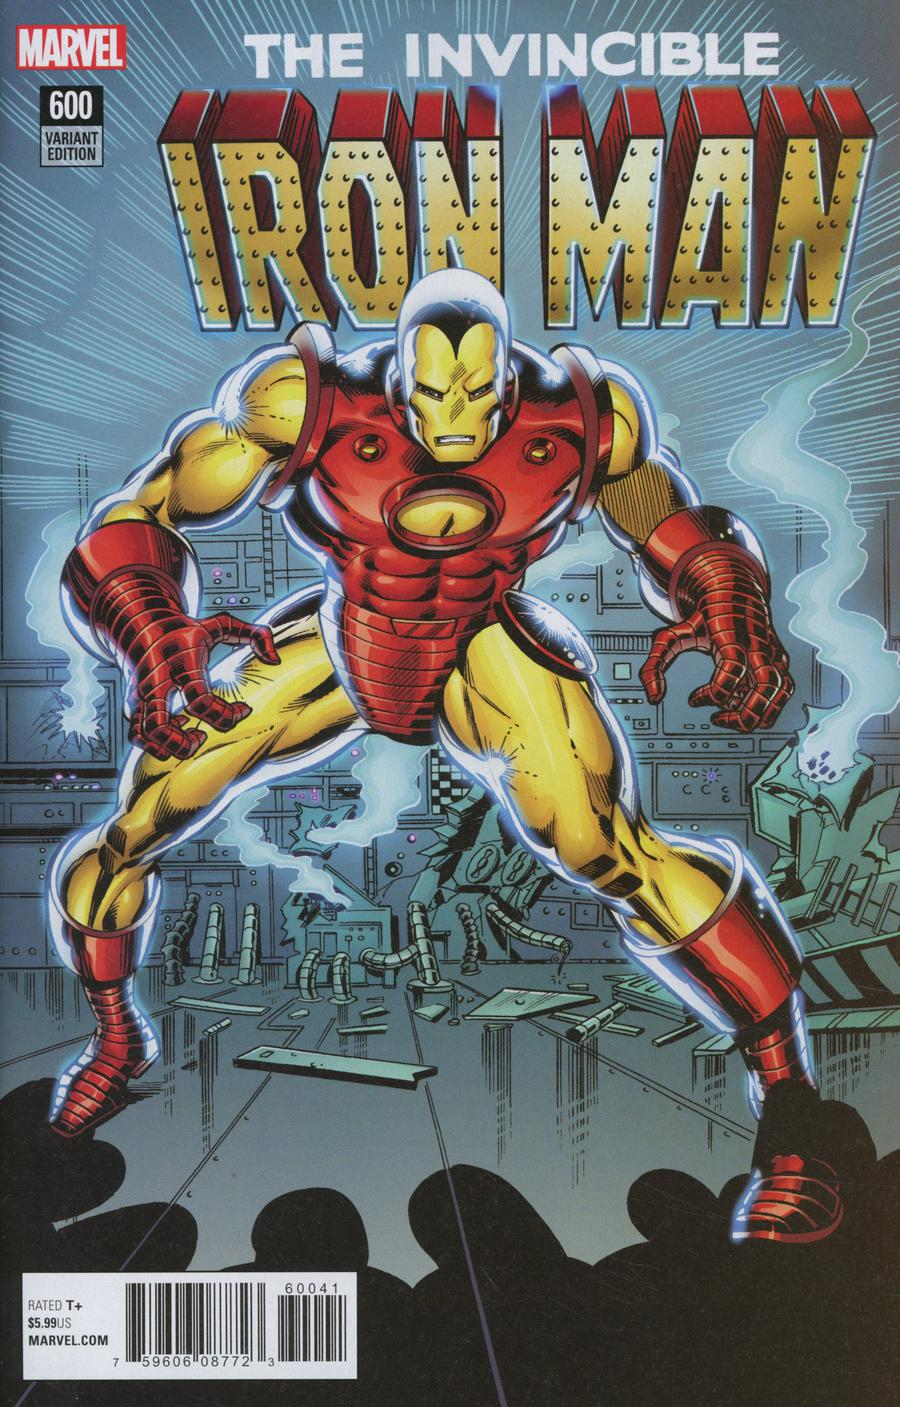 Invincible Iron Man Vol 3 #600 Cover F Incentive John Romita Jr Remastered Color Variant Cover